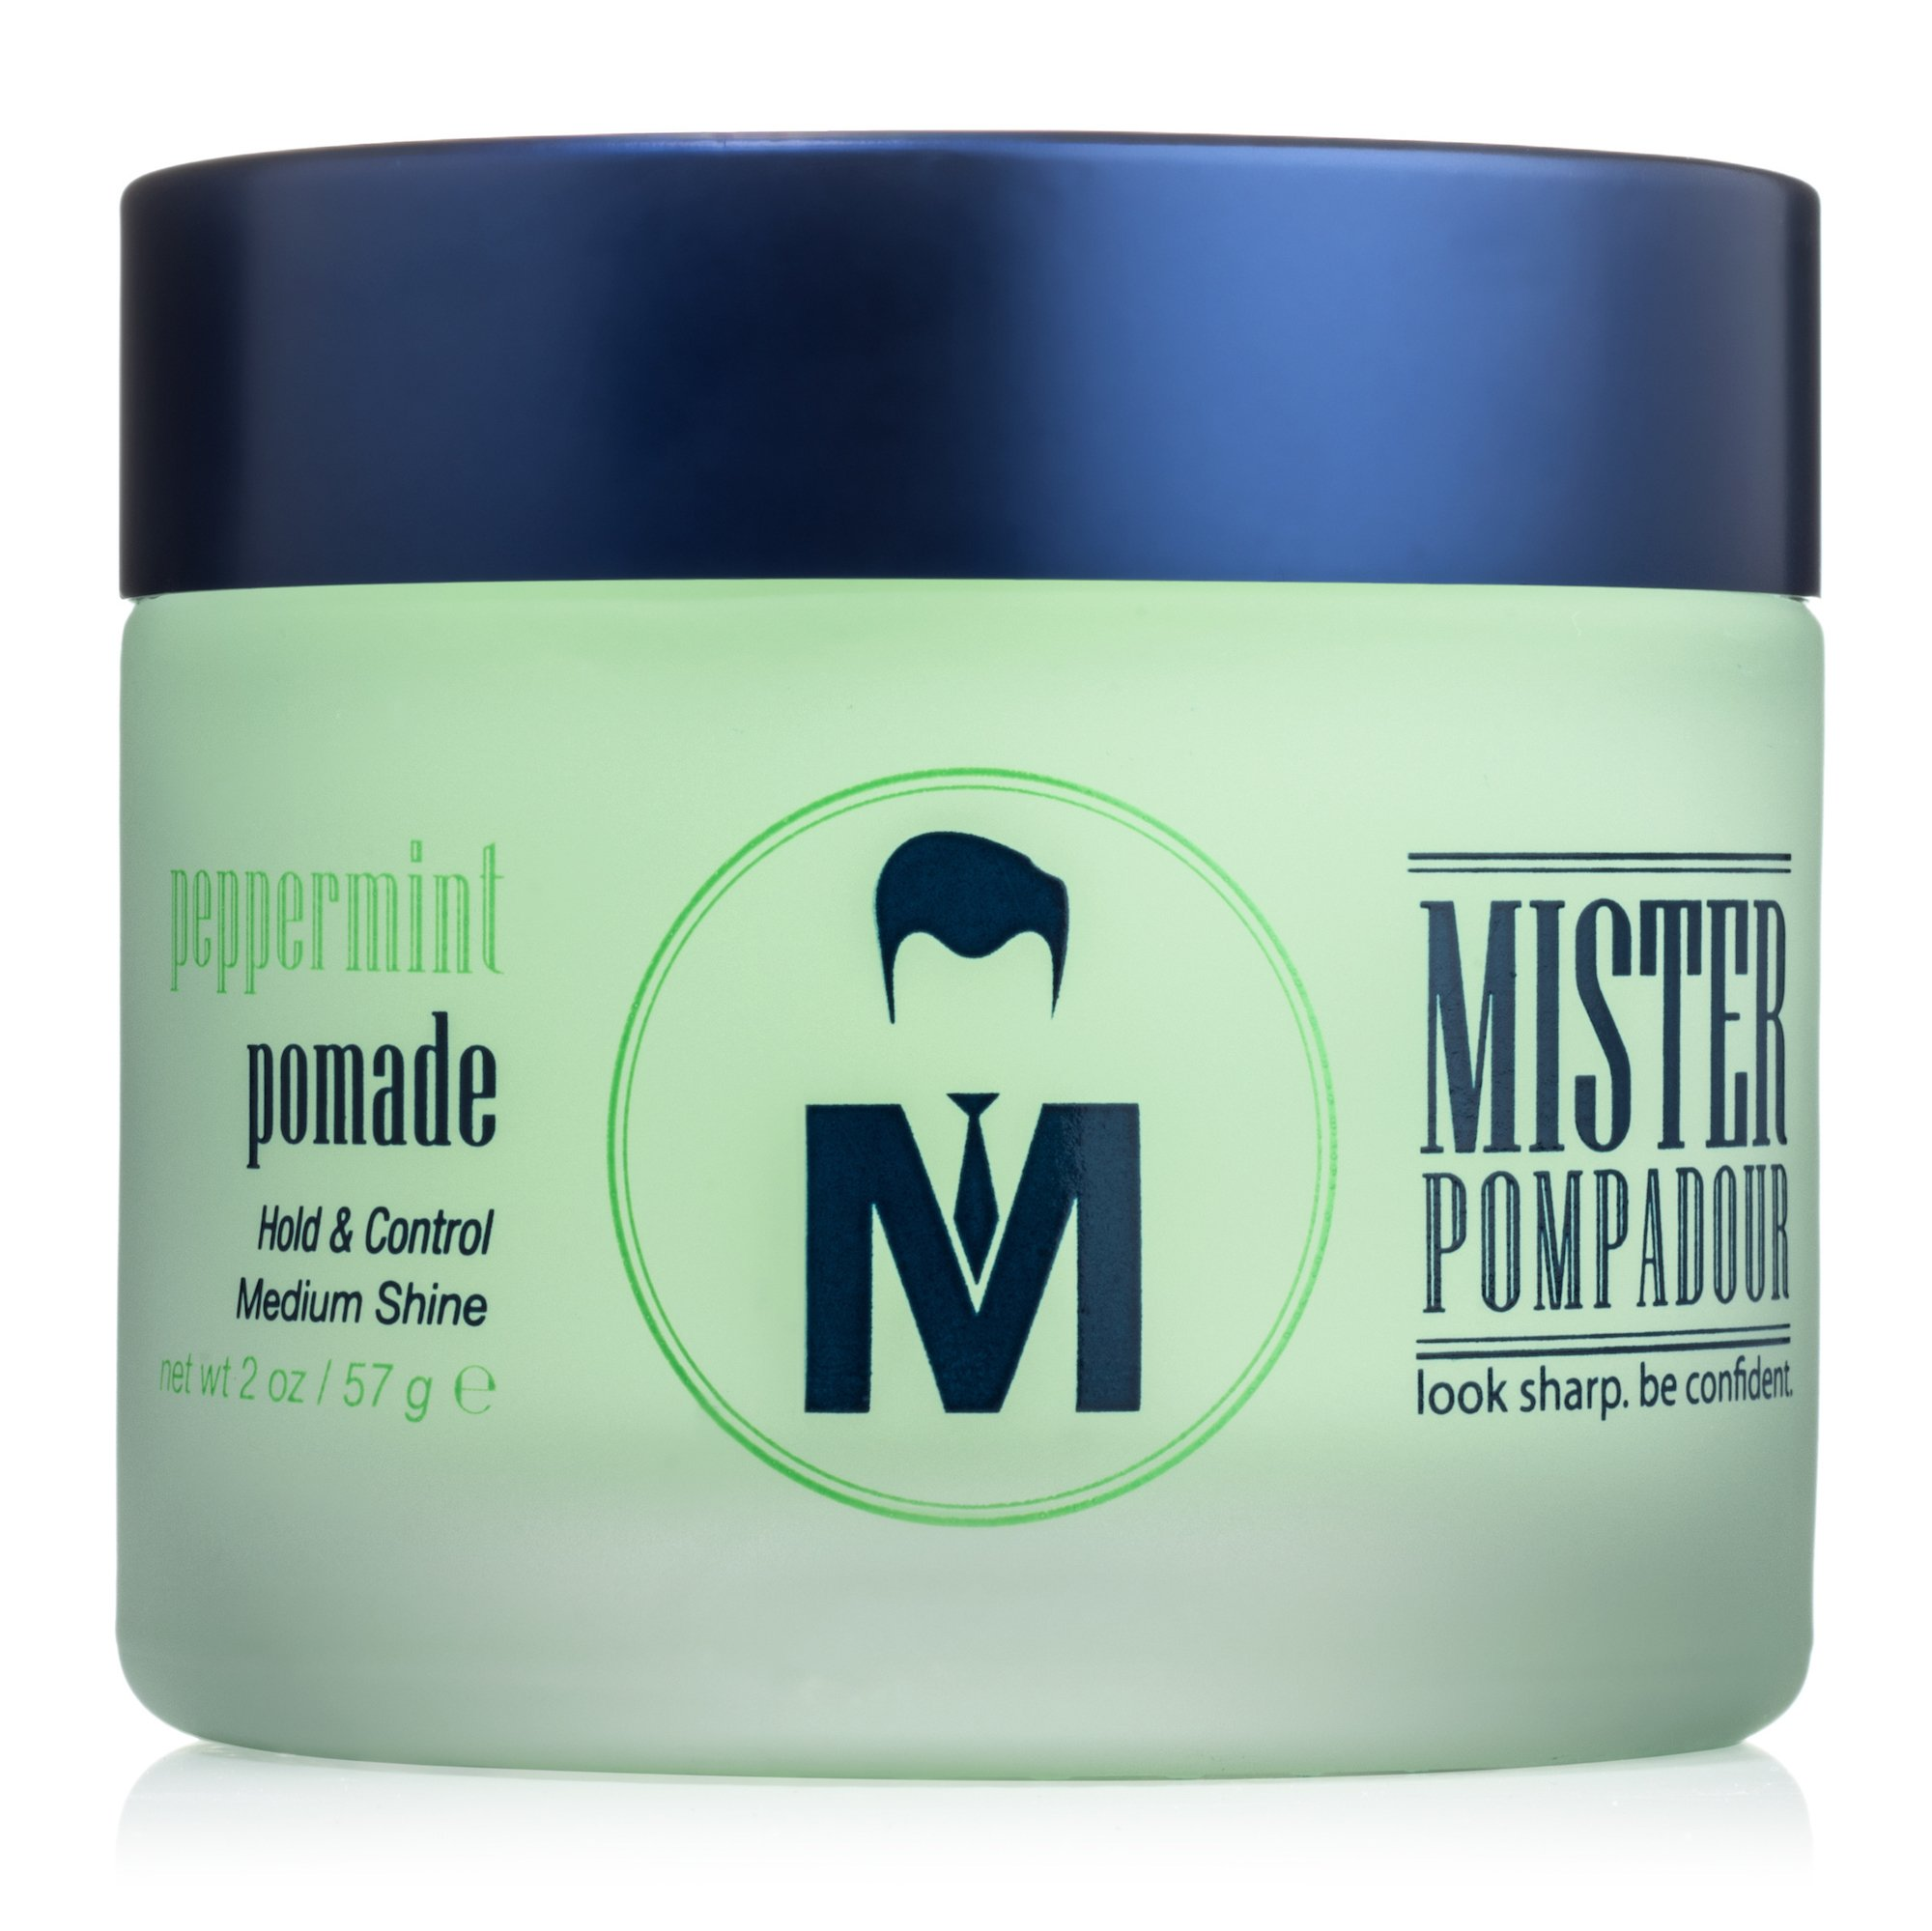 Peppermint Pomade for Men (and Women) - Medium Hold & High Shine - Water Based - All Natural Ingredients - 2 Oz - Mister Pompadour